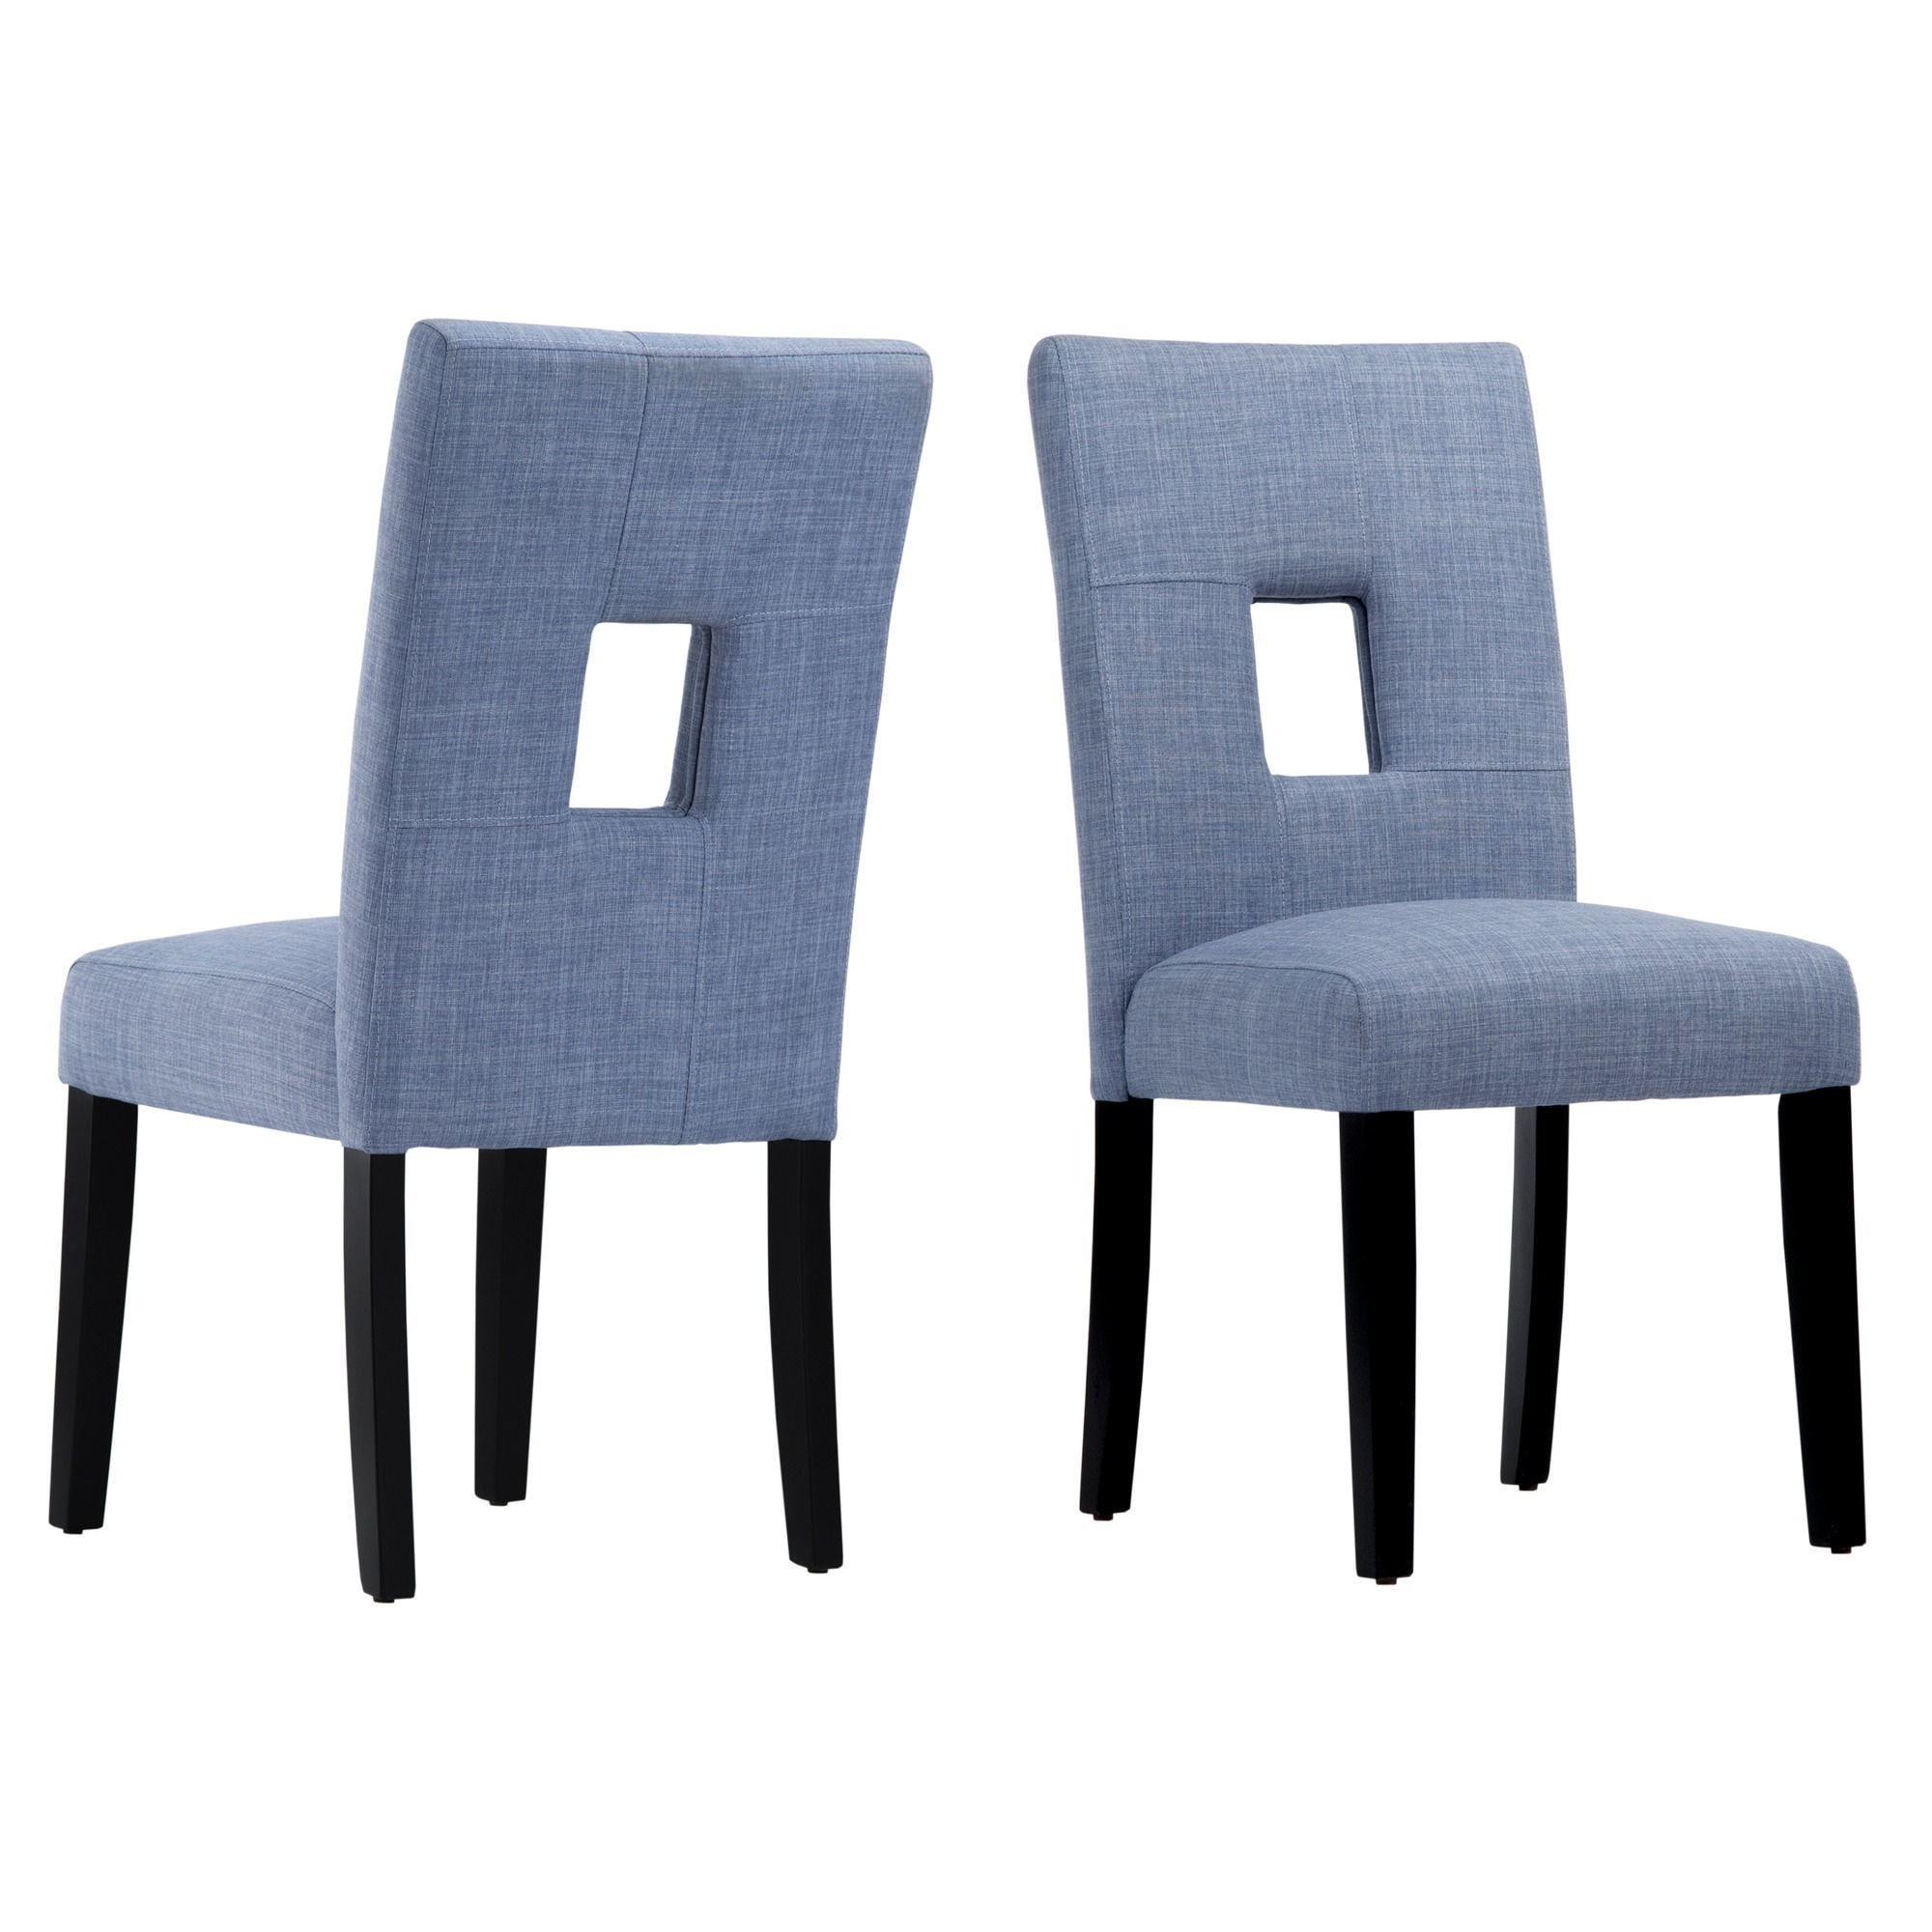 Mendoza Keyhole Back Dining Chairs (Set of 2) by iNSPIRE Q Bold - Free  Shipping Today - Overstock.com - 13015302